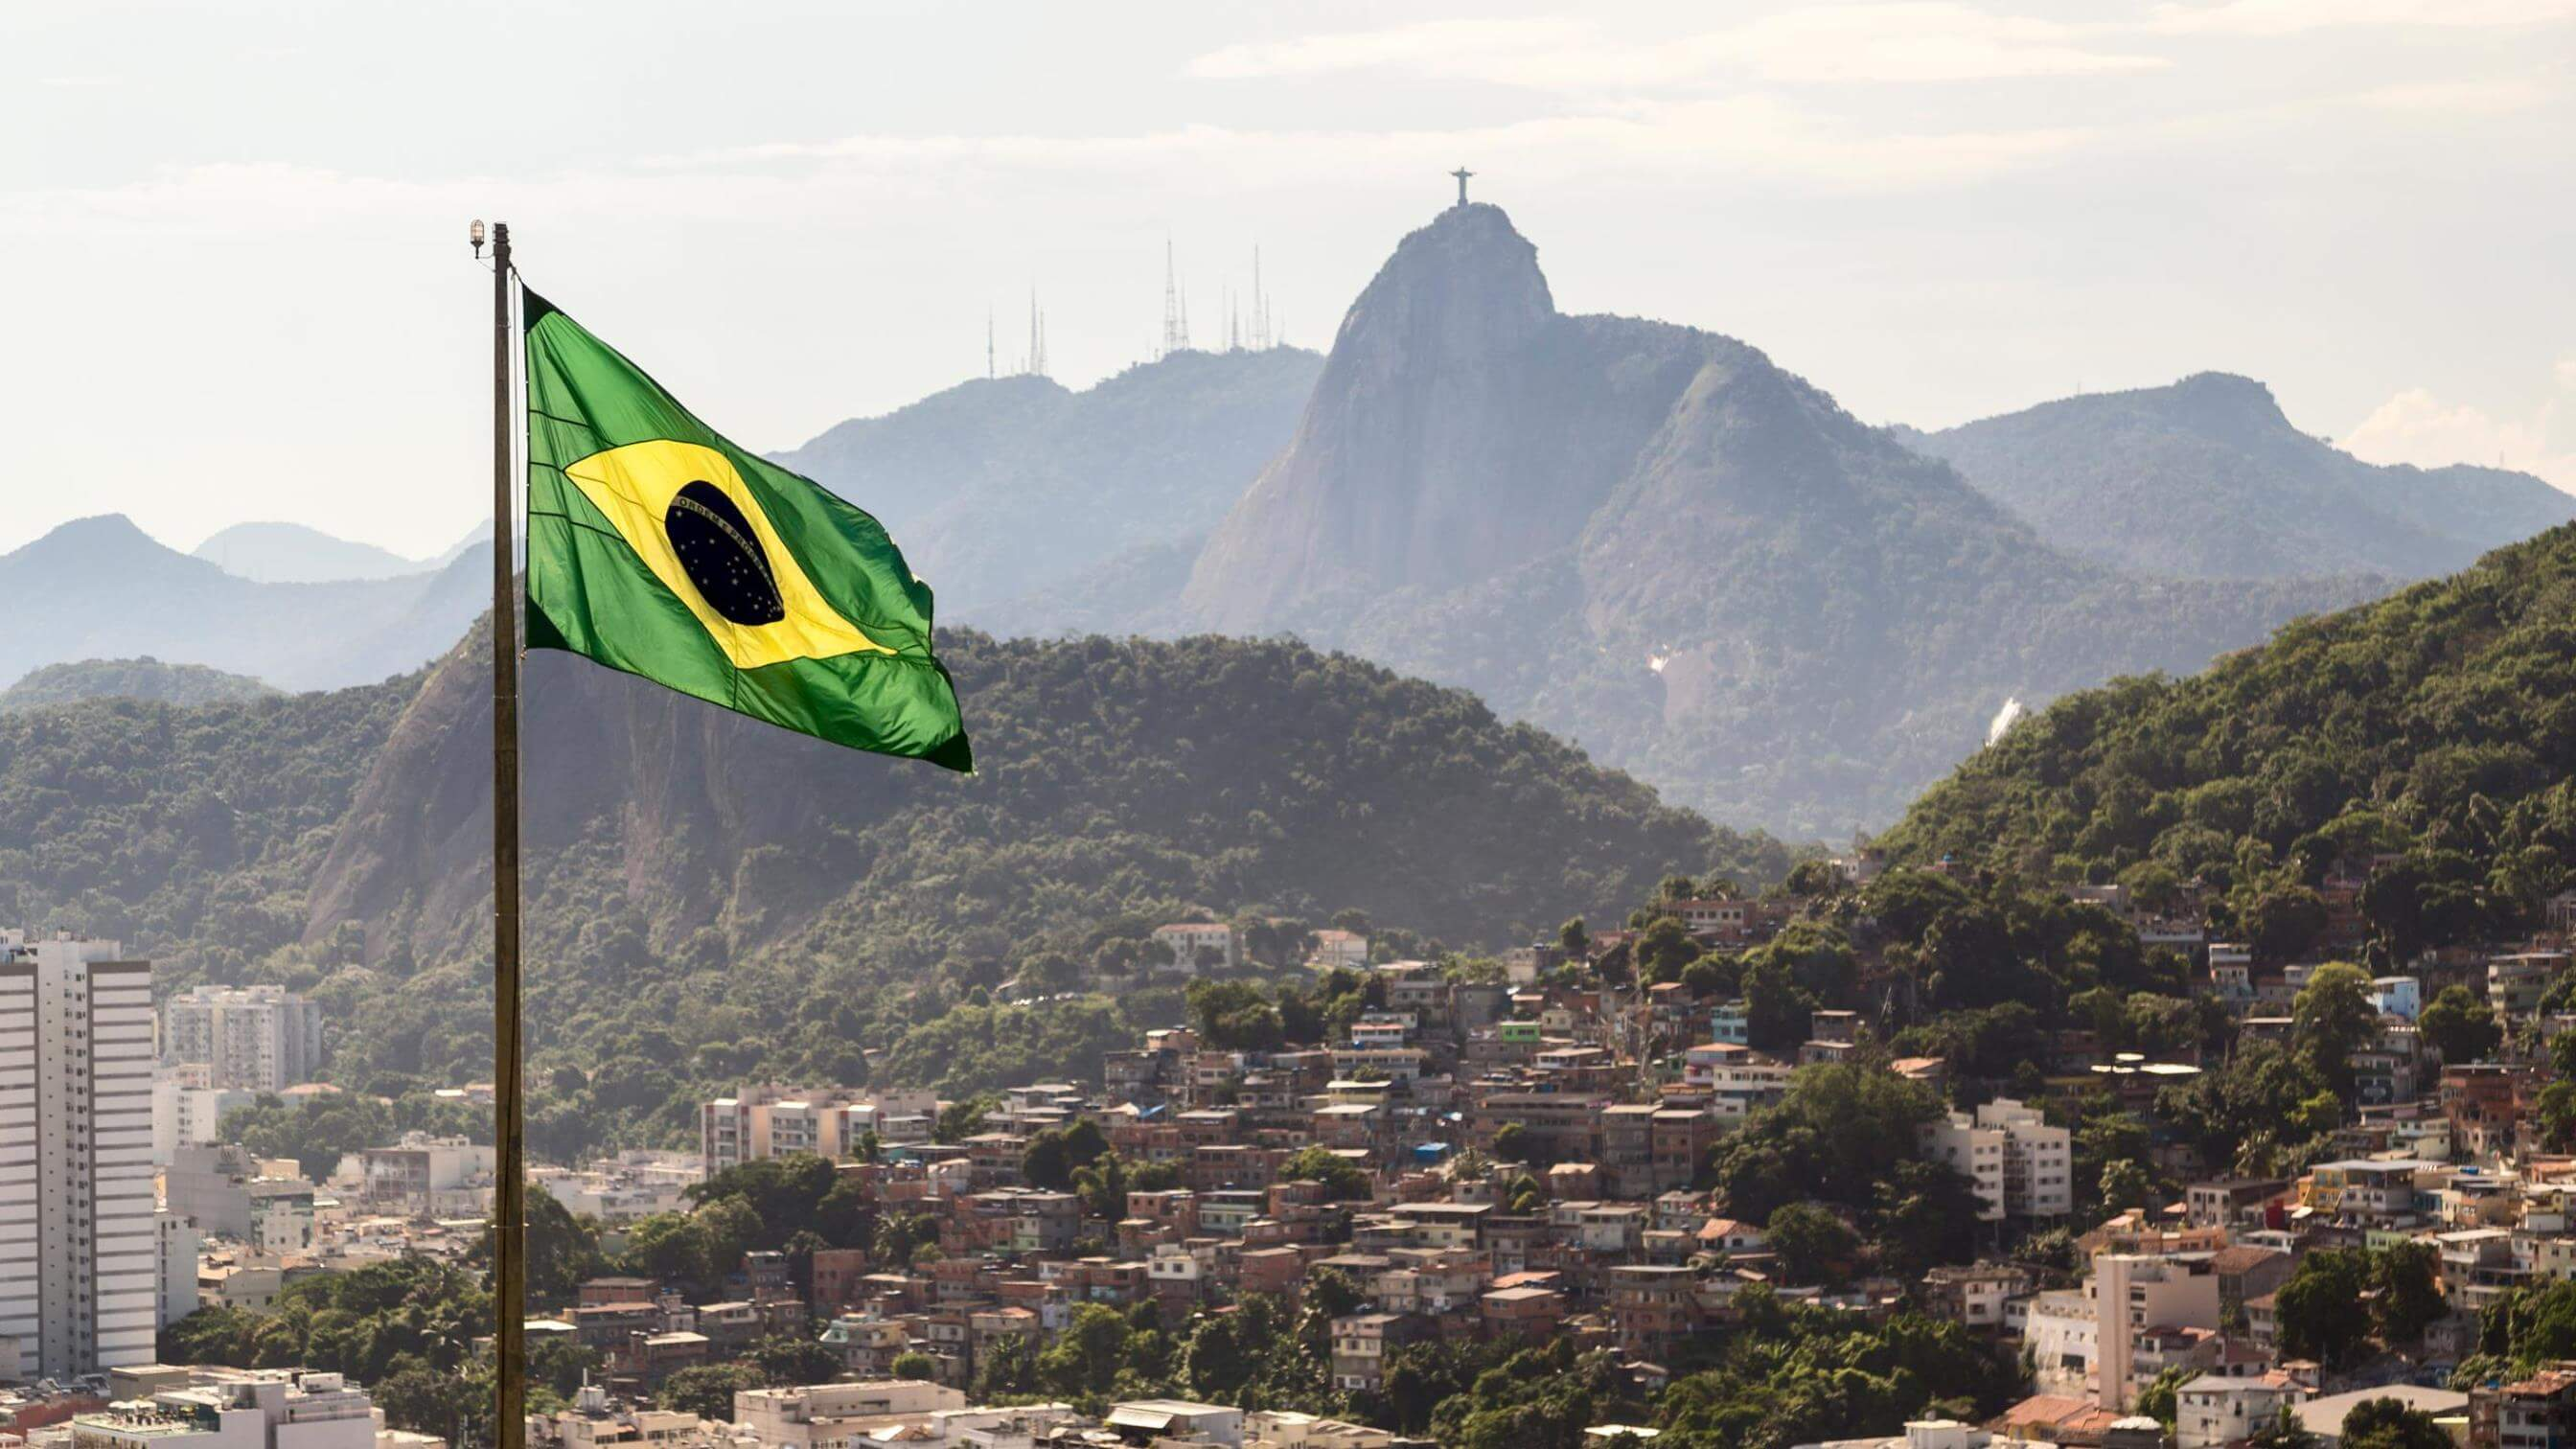 View across Rio showing the Brazilian flag